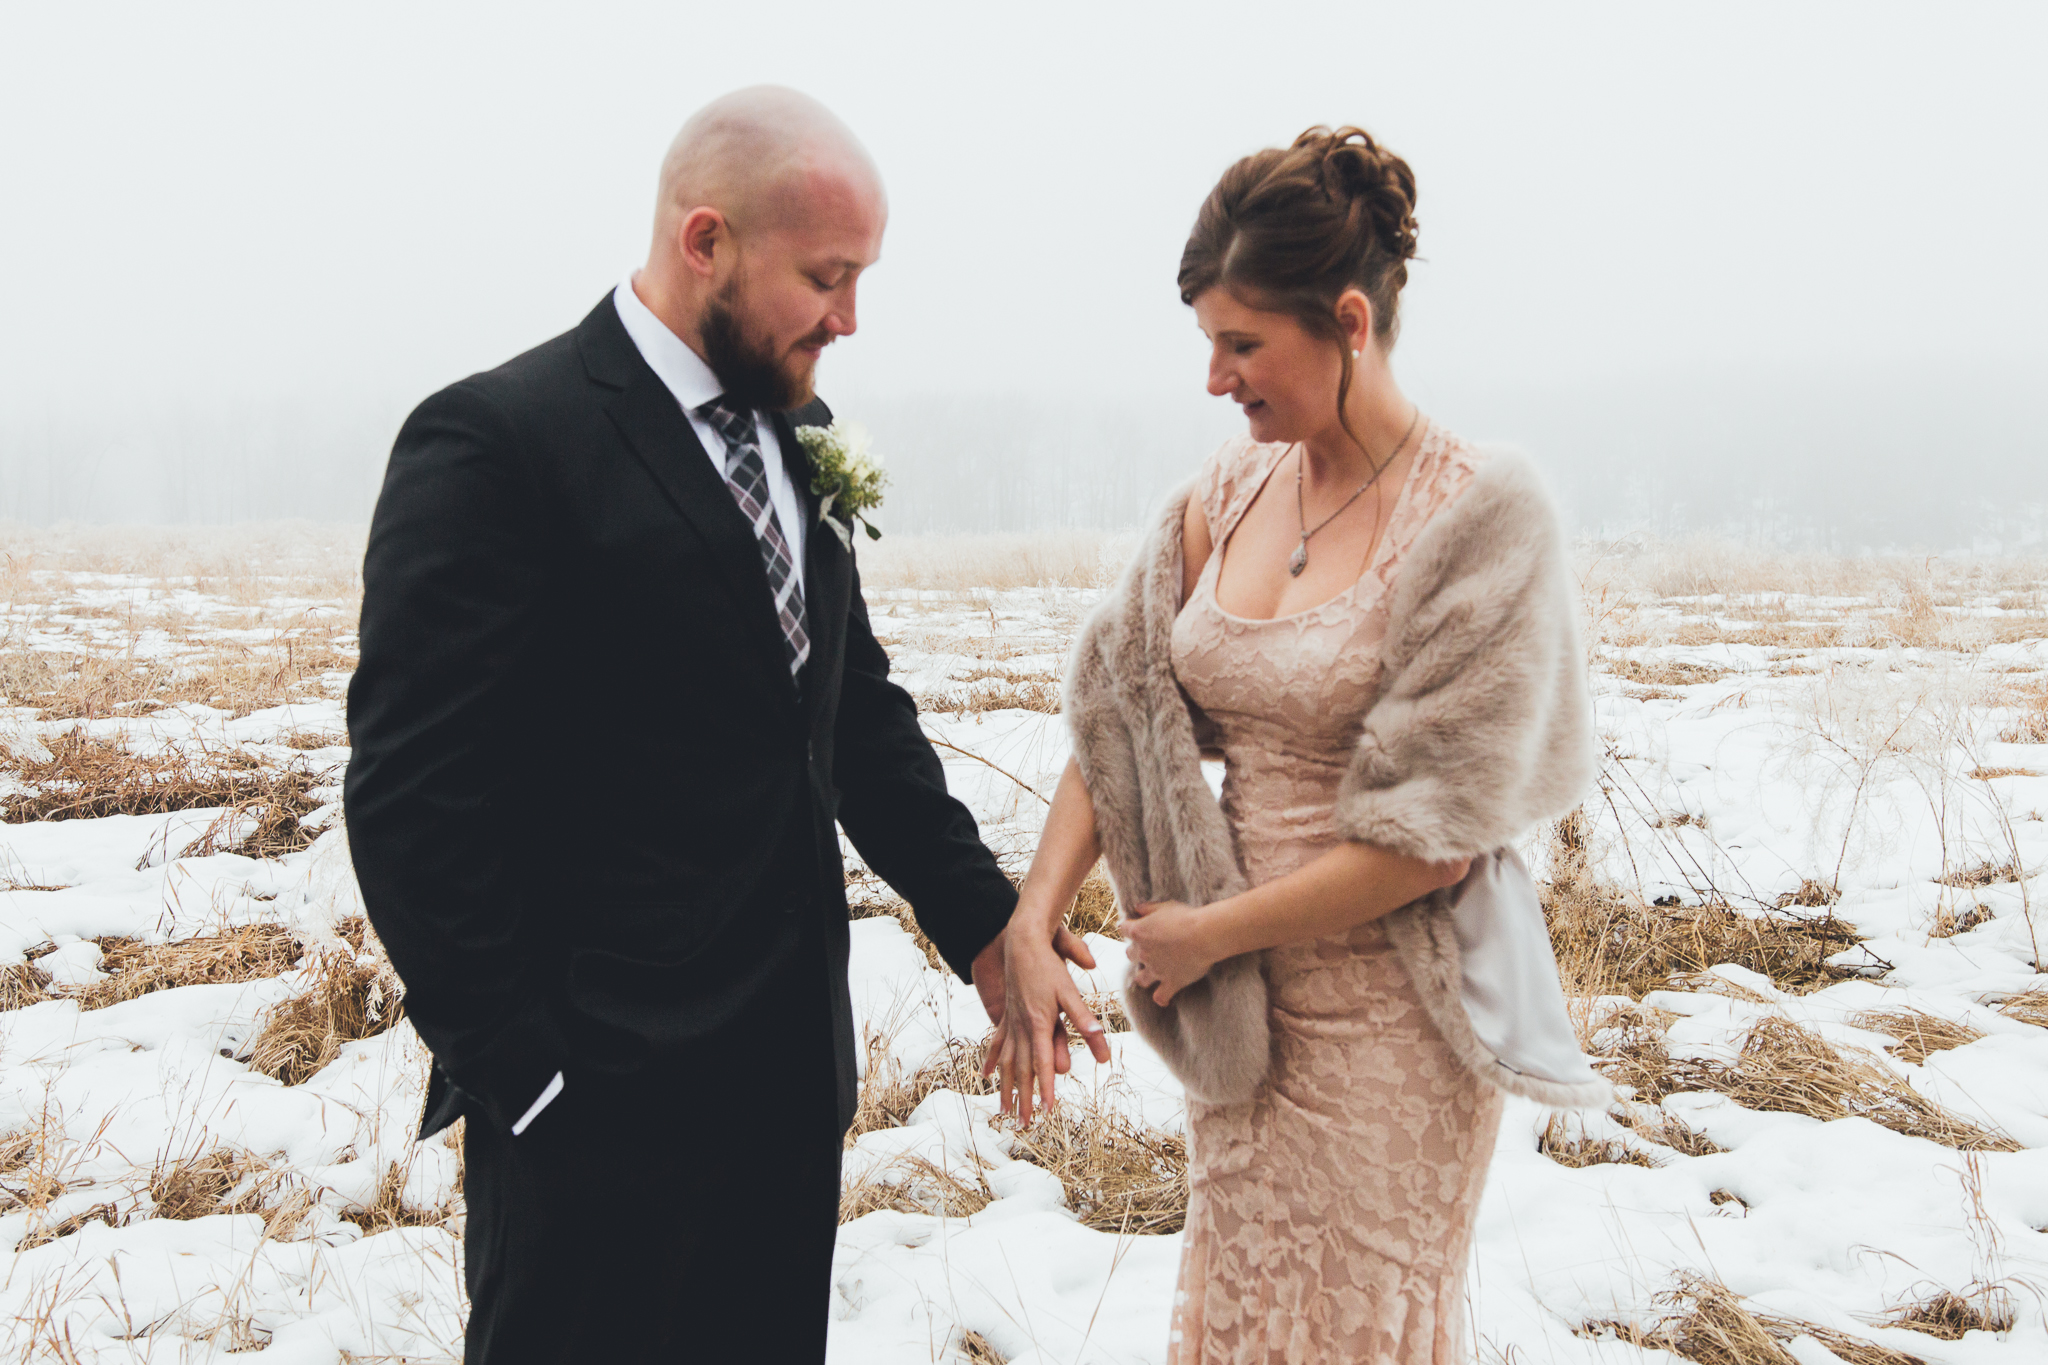 Bride and groom holding hands in snowy foggy field after wedding at Bow Valley Ranche